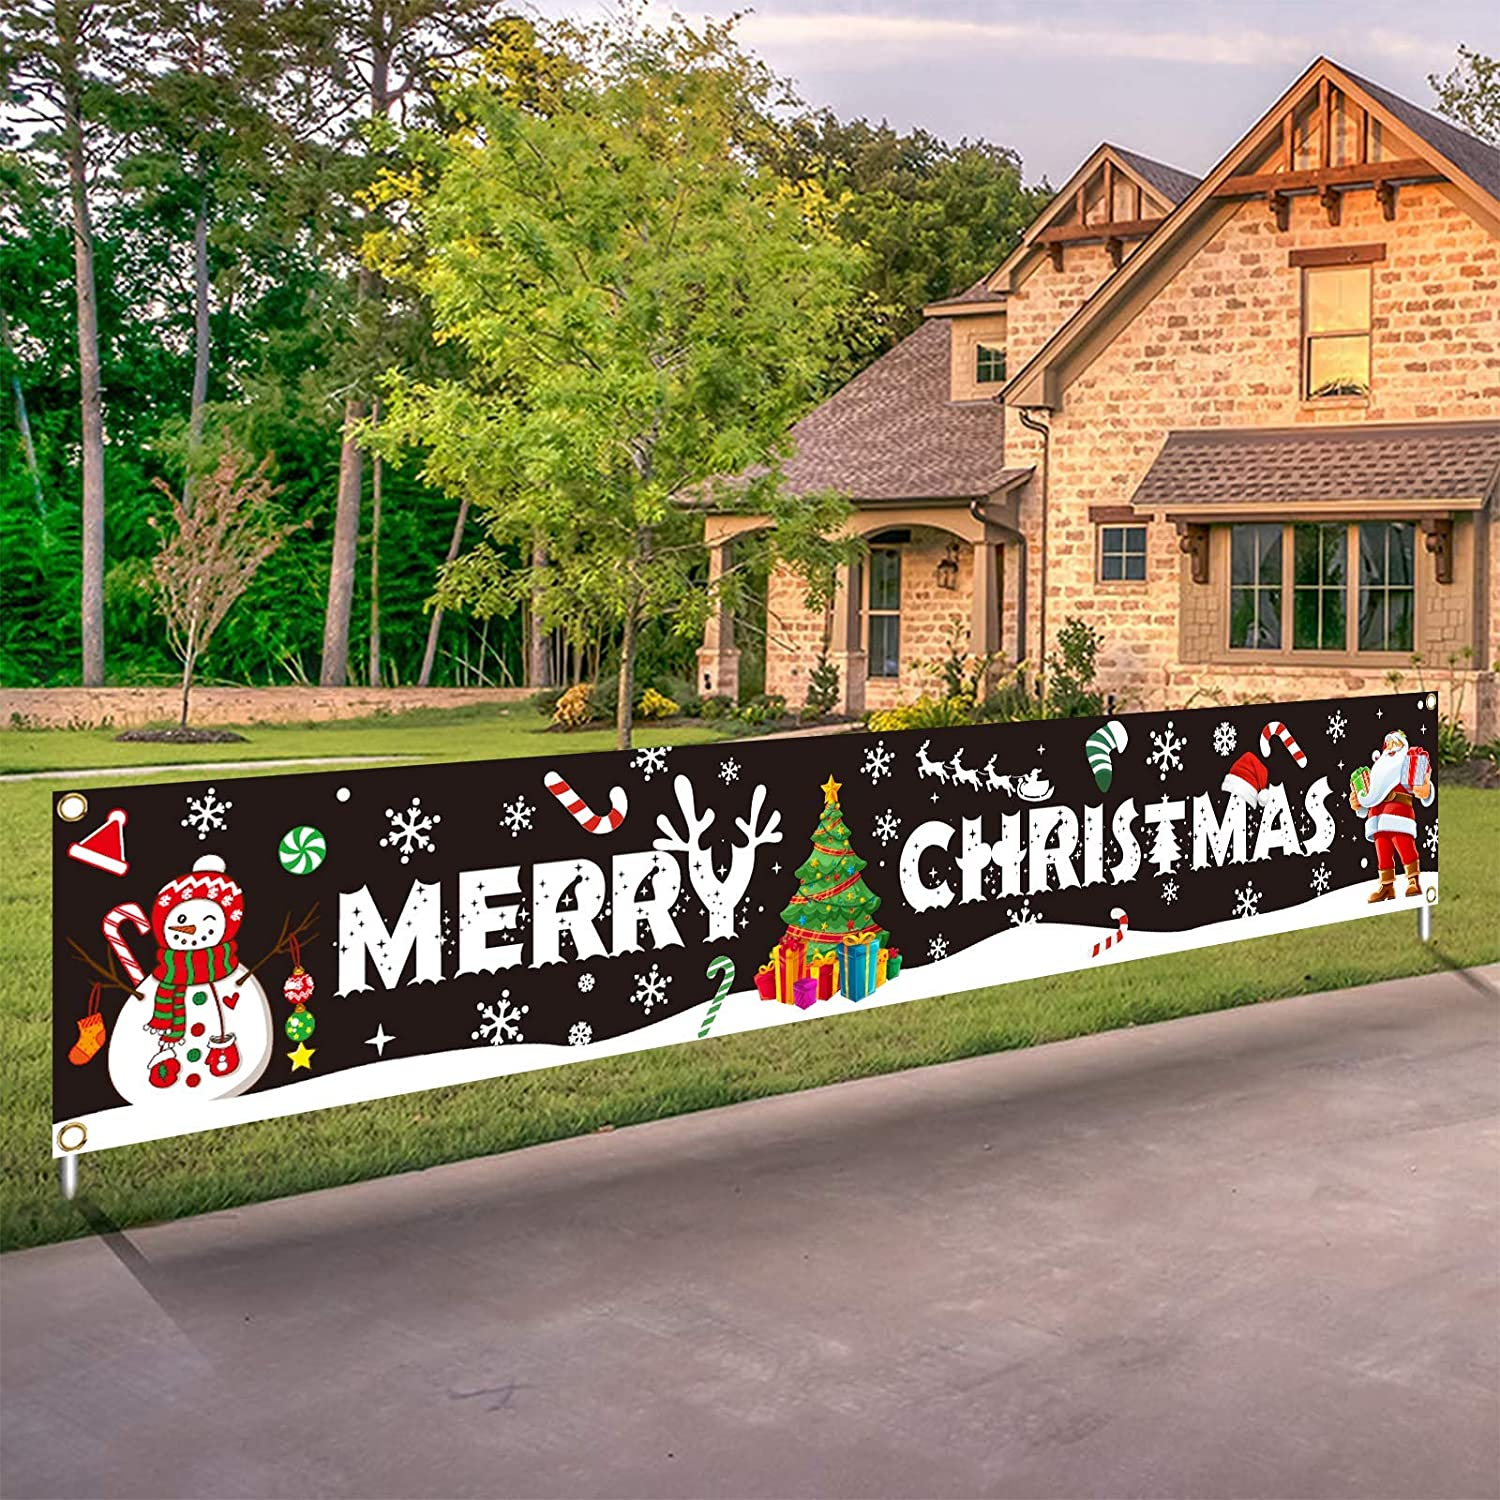 Large Merry Christmas Banner Xmas Decoration Snowman Christmas Tree Hanging Huge Santa Claus Sign Holiday Party Supplies Home Decor for Outdoor,Indoor,Yard,Garden,Porch,Lawn